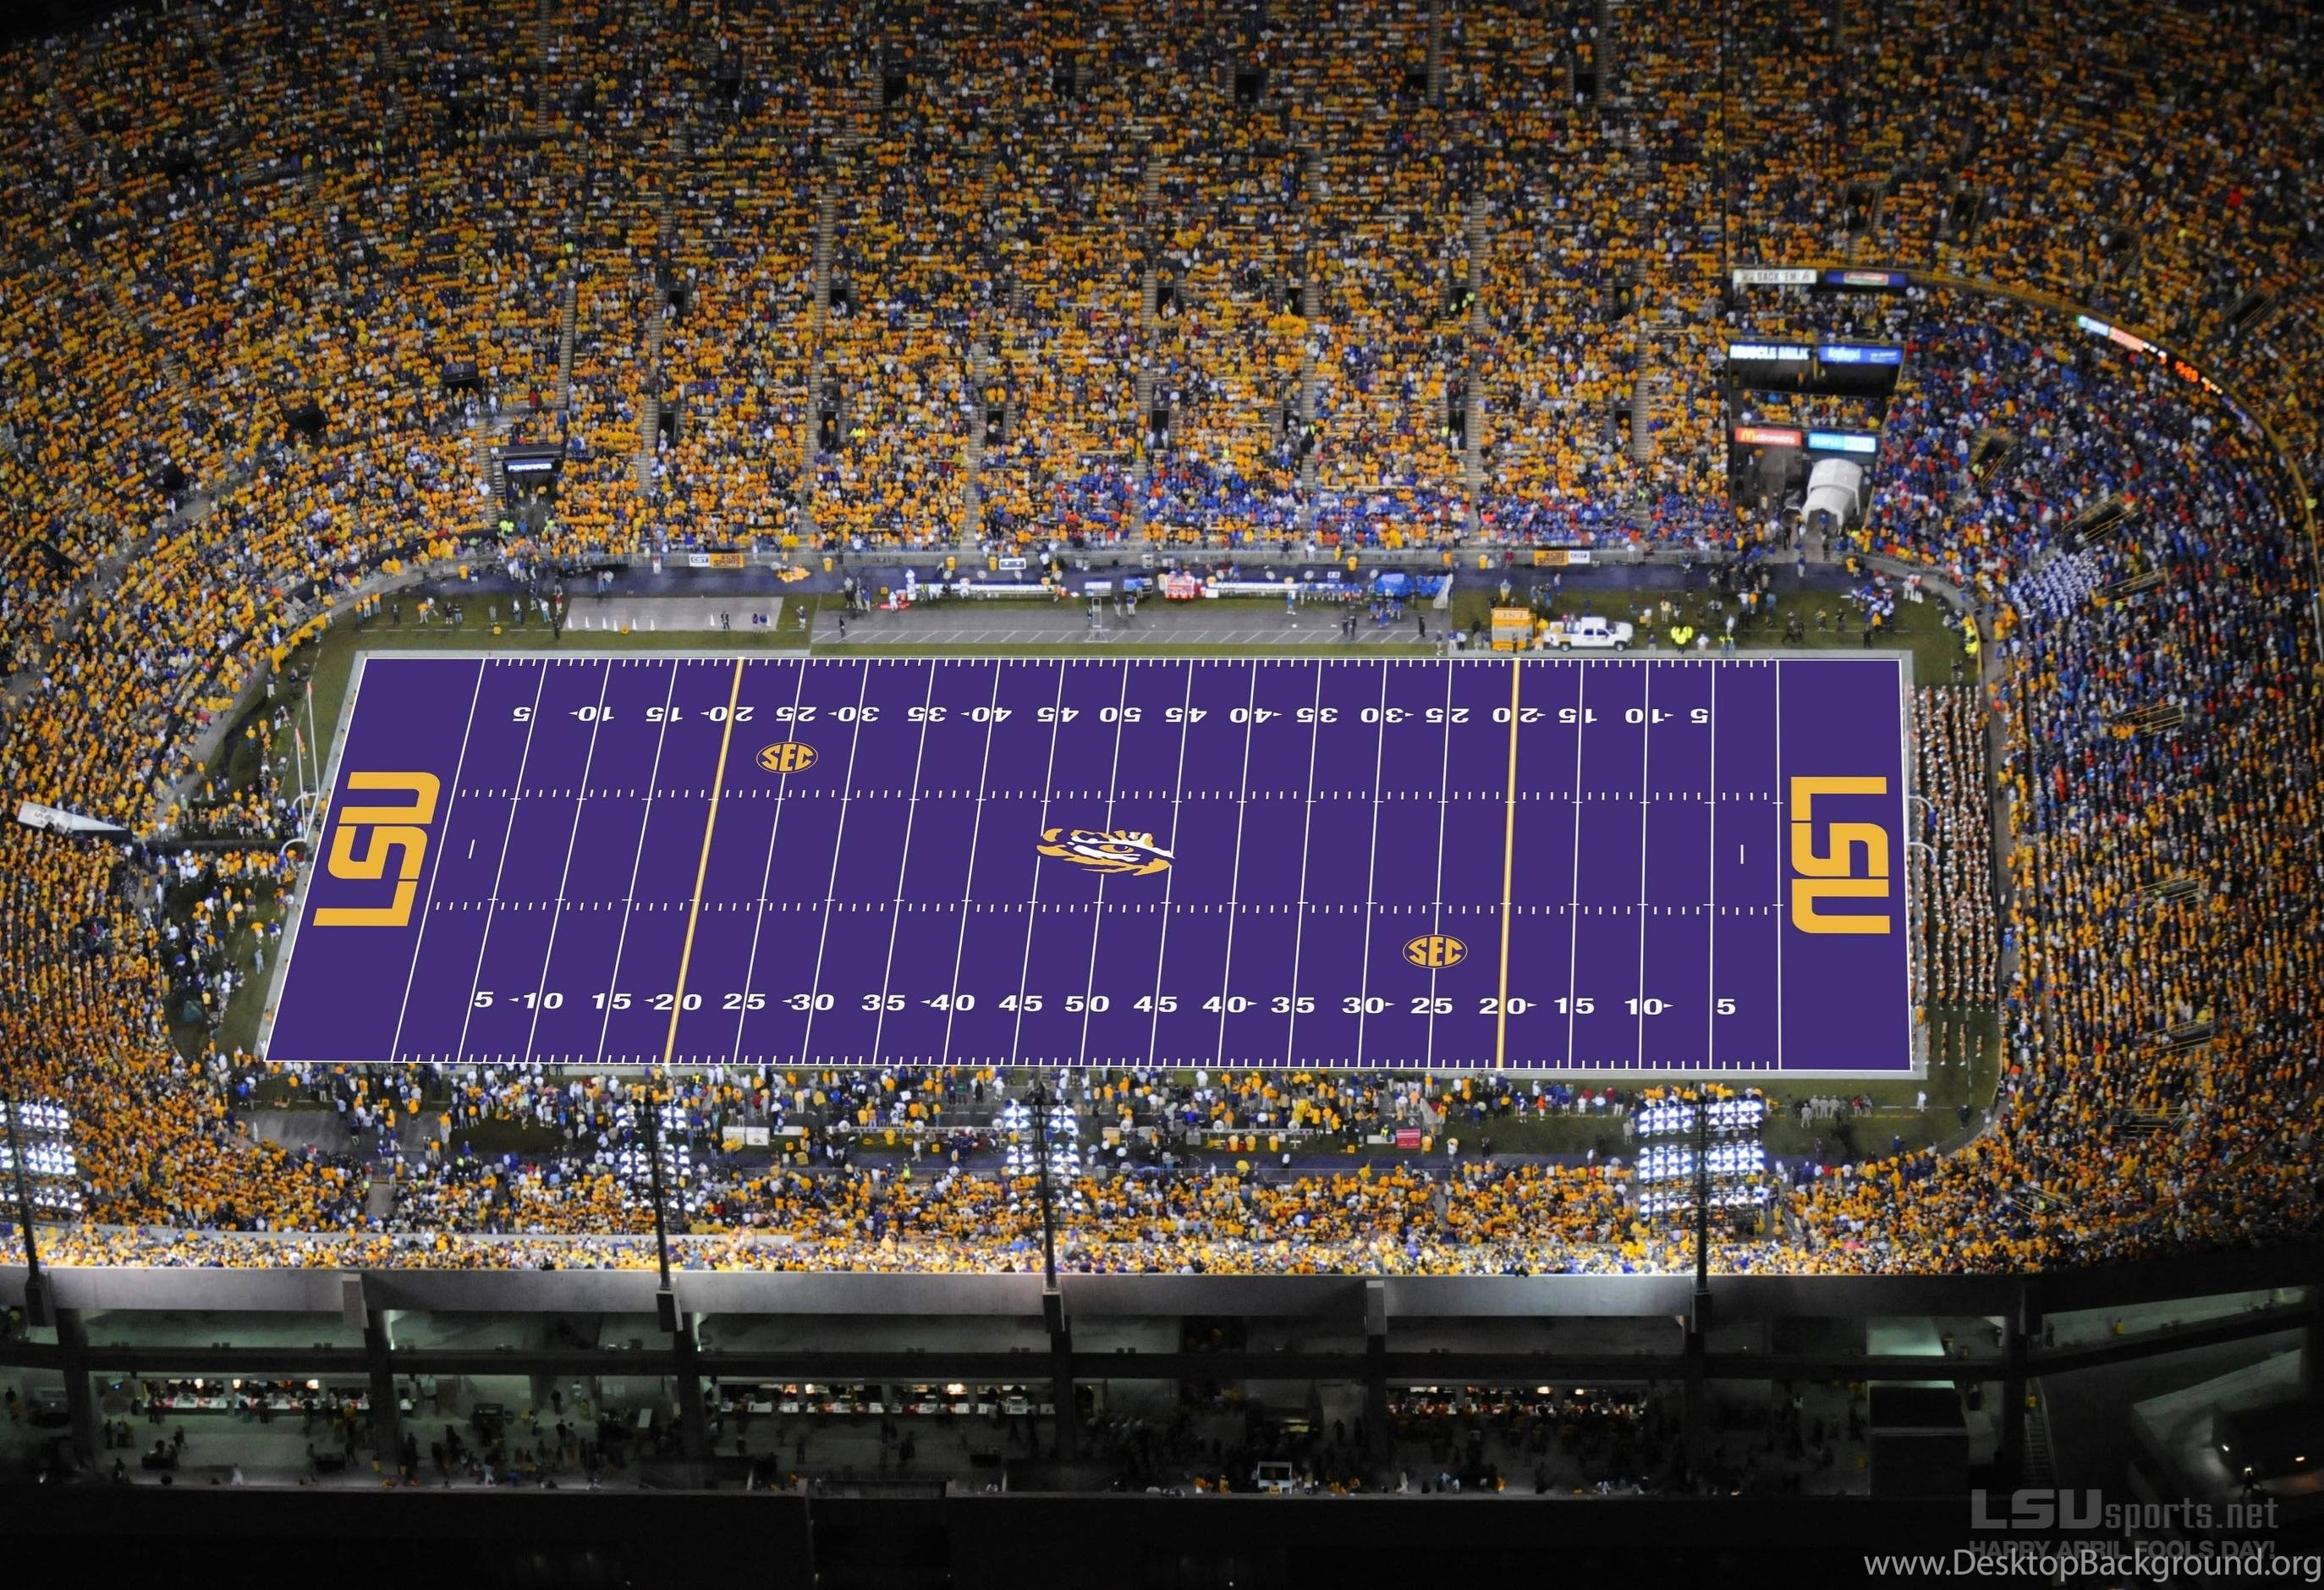 2747x1879 Lsu Tigers Football Wallpapers Wallpapers Download